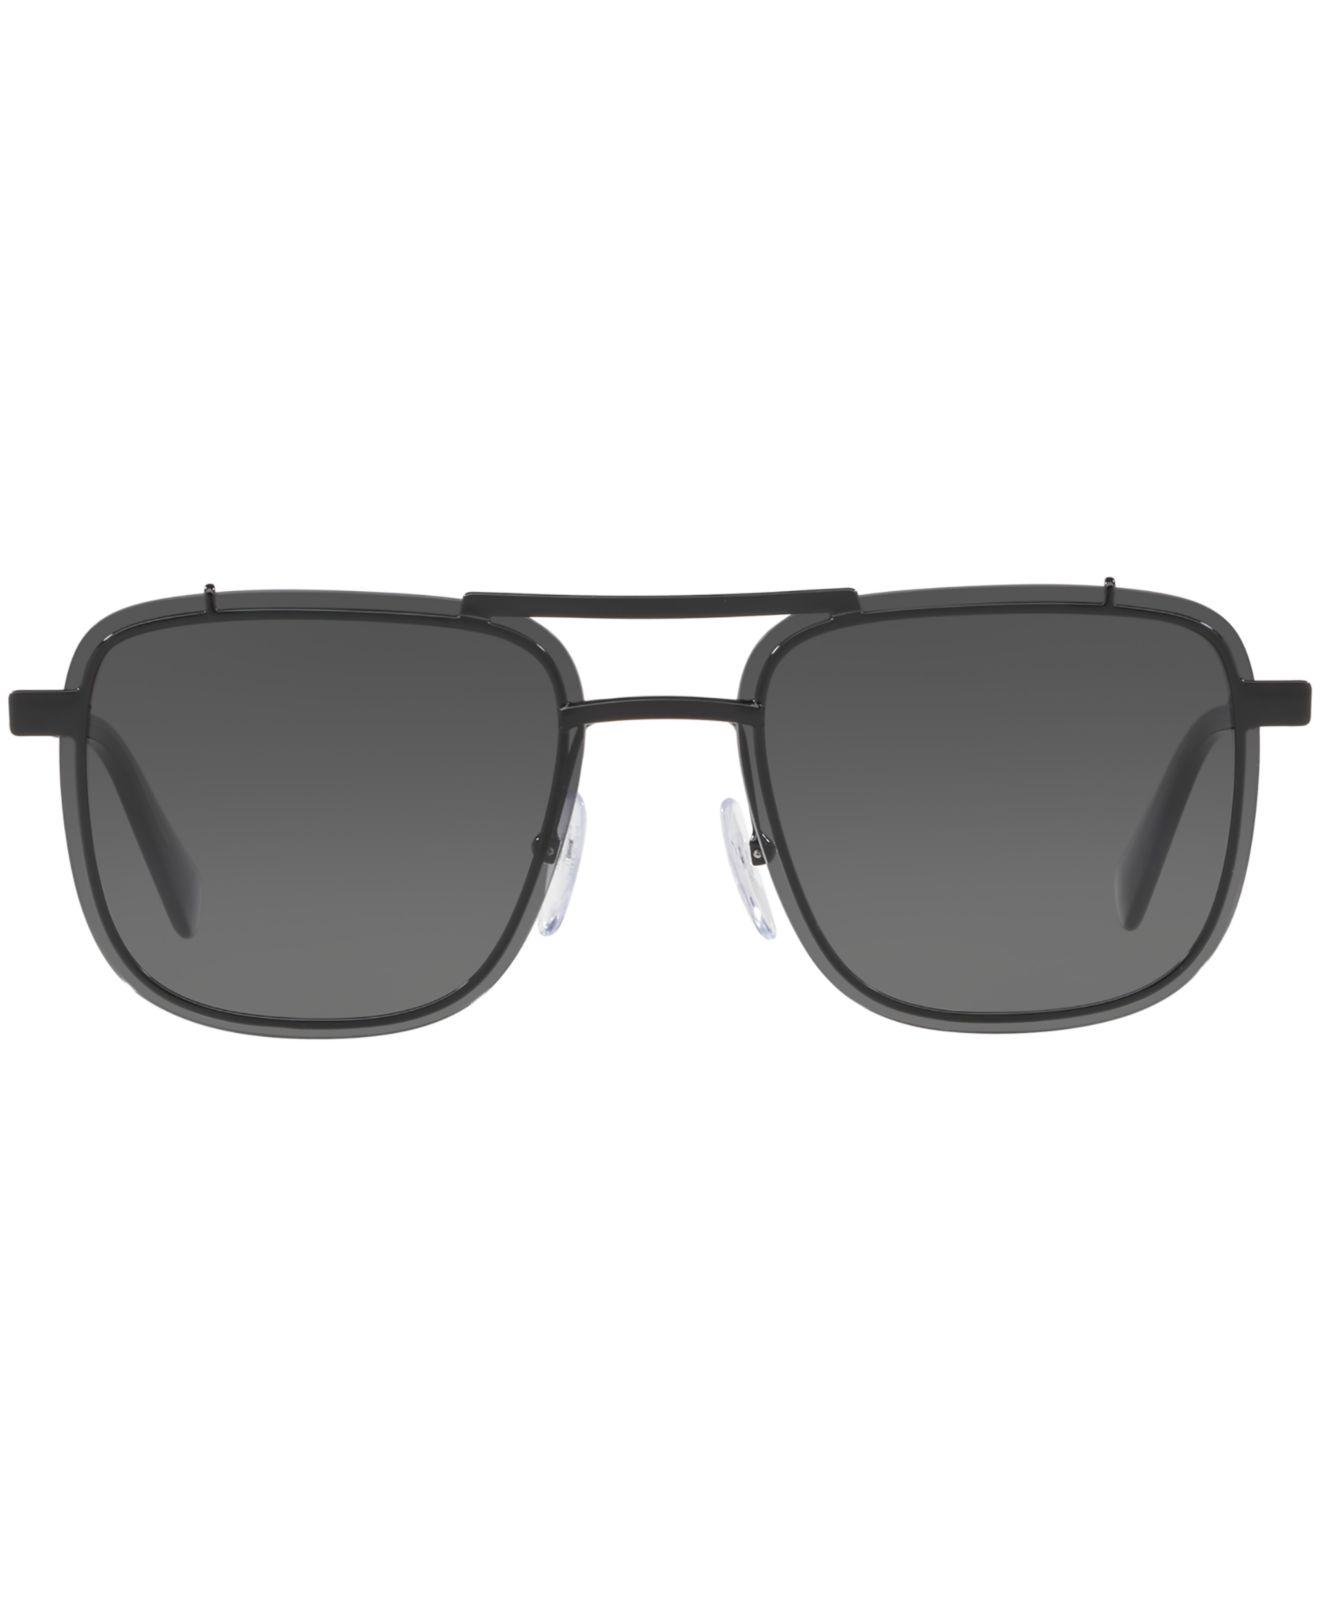 24f0e8898d Lyst - Prada 59us Rectangle Sunglasses in Black for Men